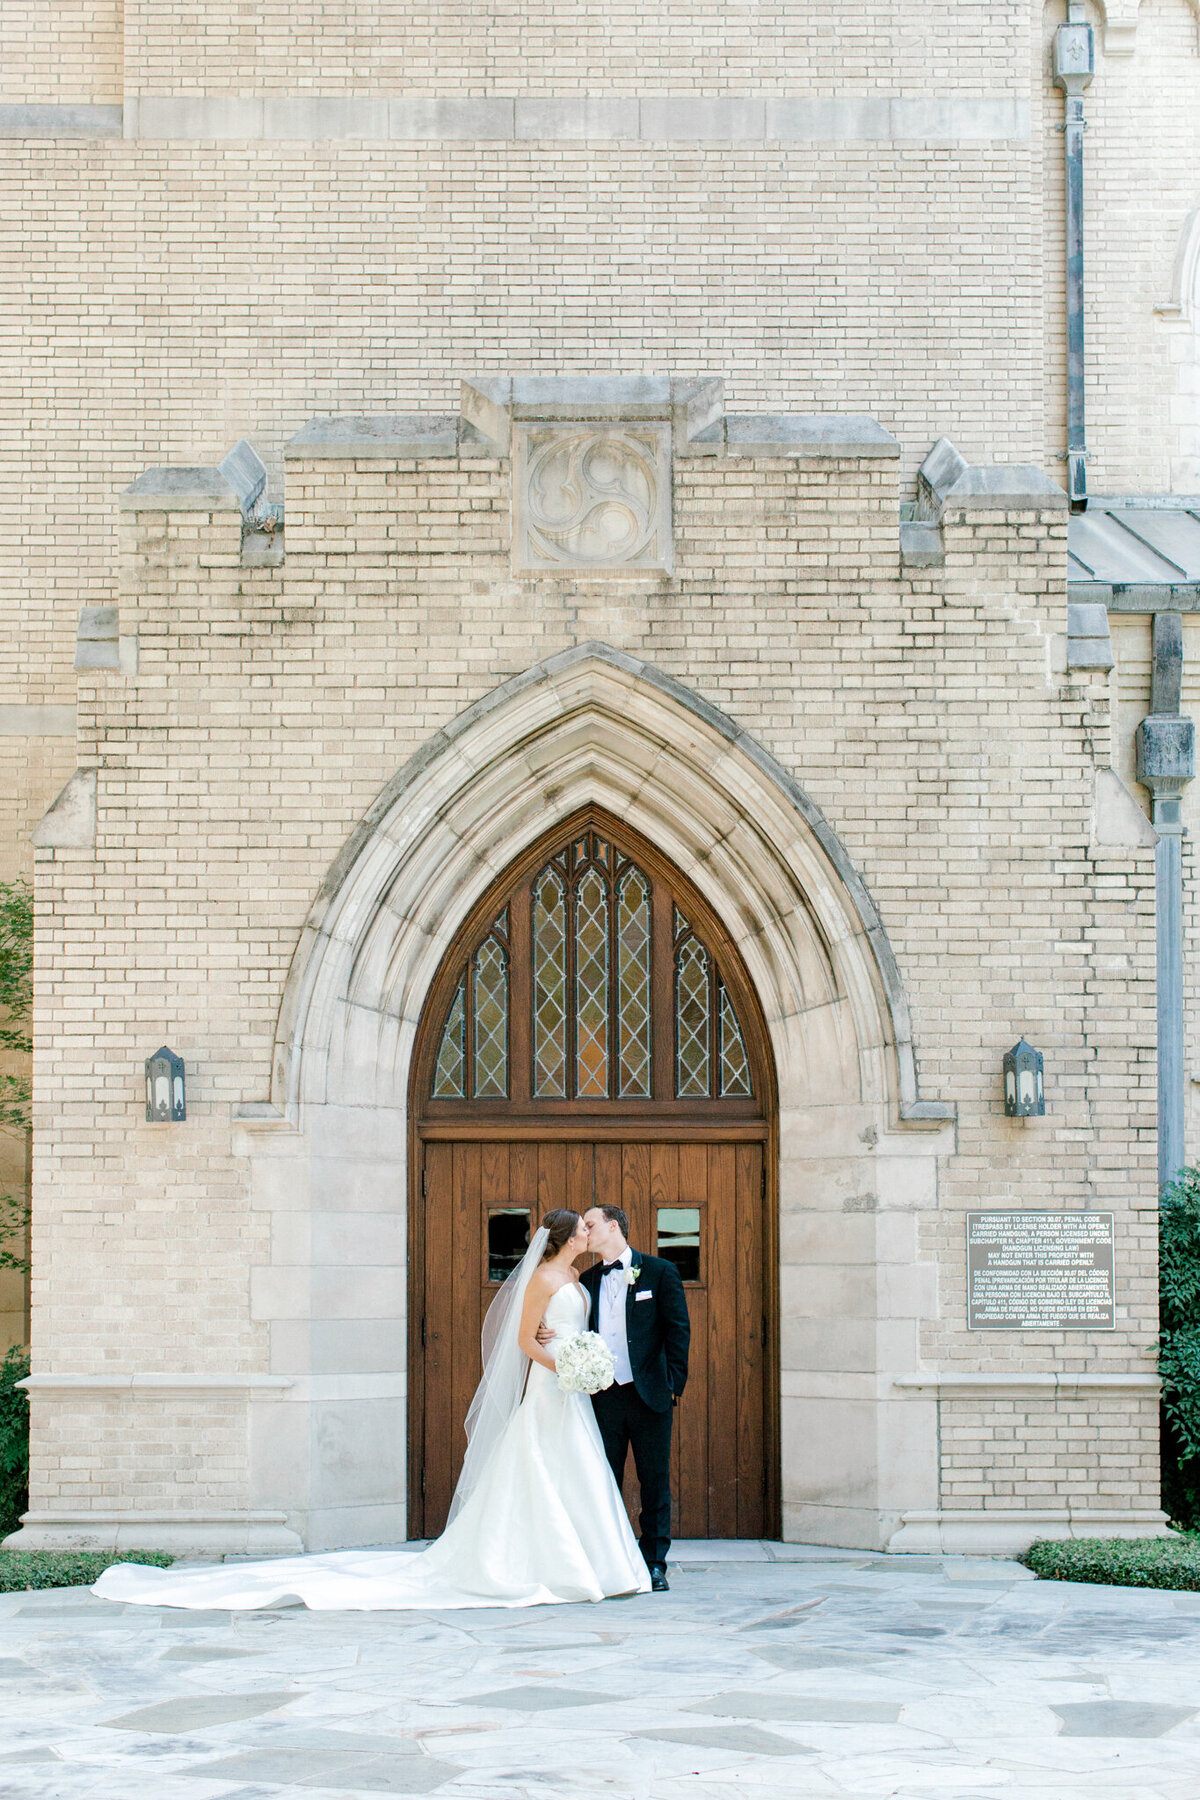 Wedding at the Crescent Court Hotel and Highland Park United Methodist Church in Dallas | Sami Kathryn Photography | DFW Wedding Photographer-136